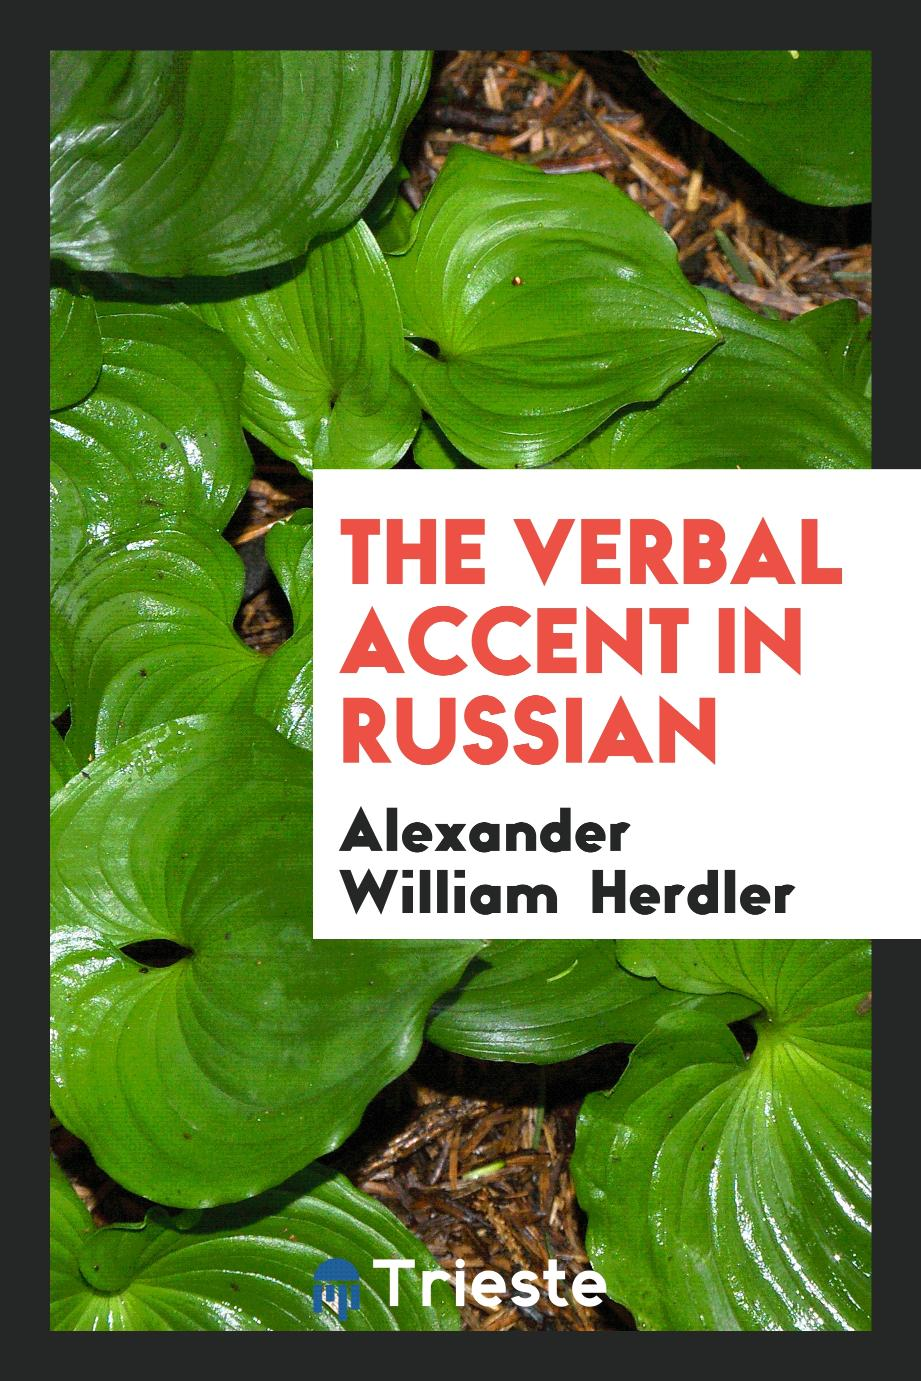 The Verbal Accent in Russian